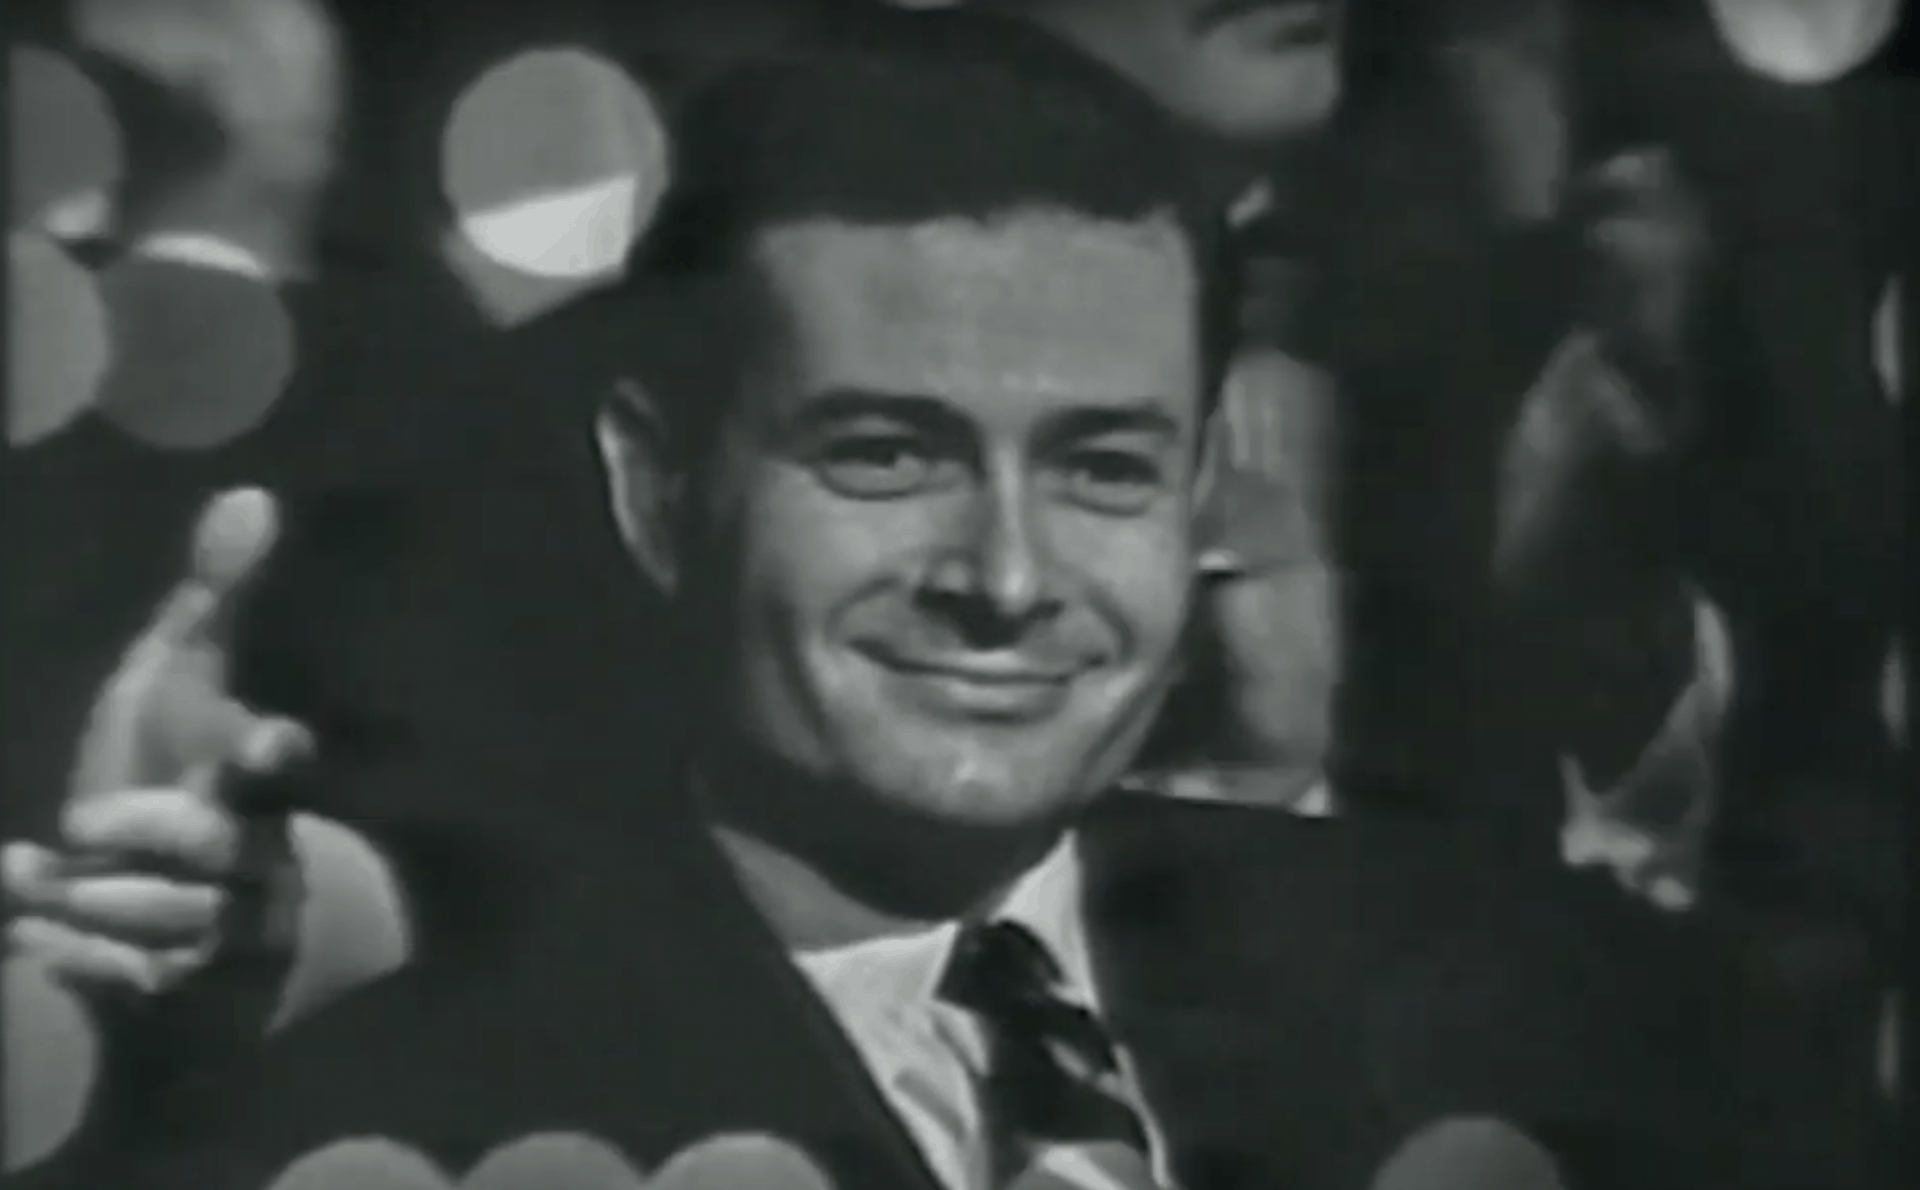 Black and white image of Jerry Herman